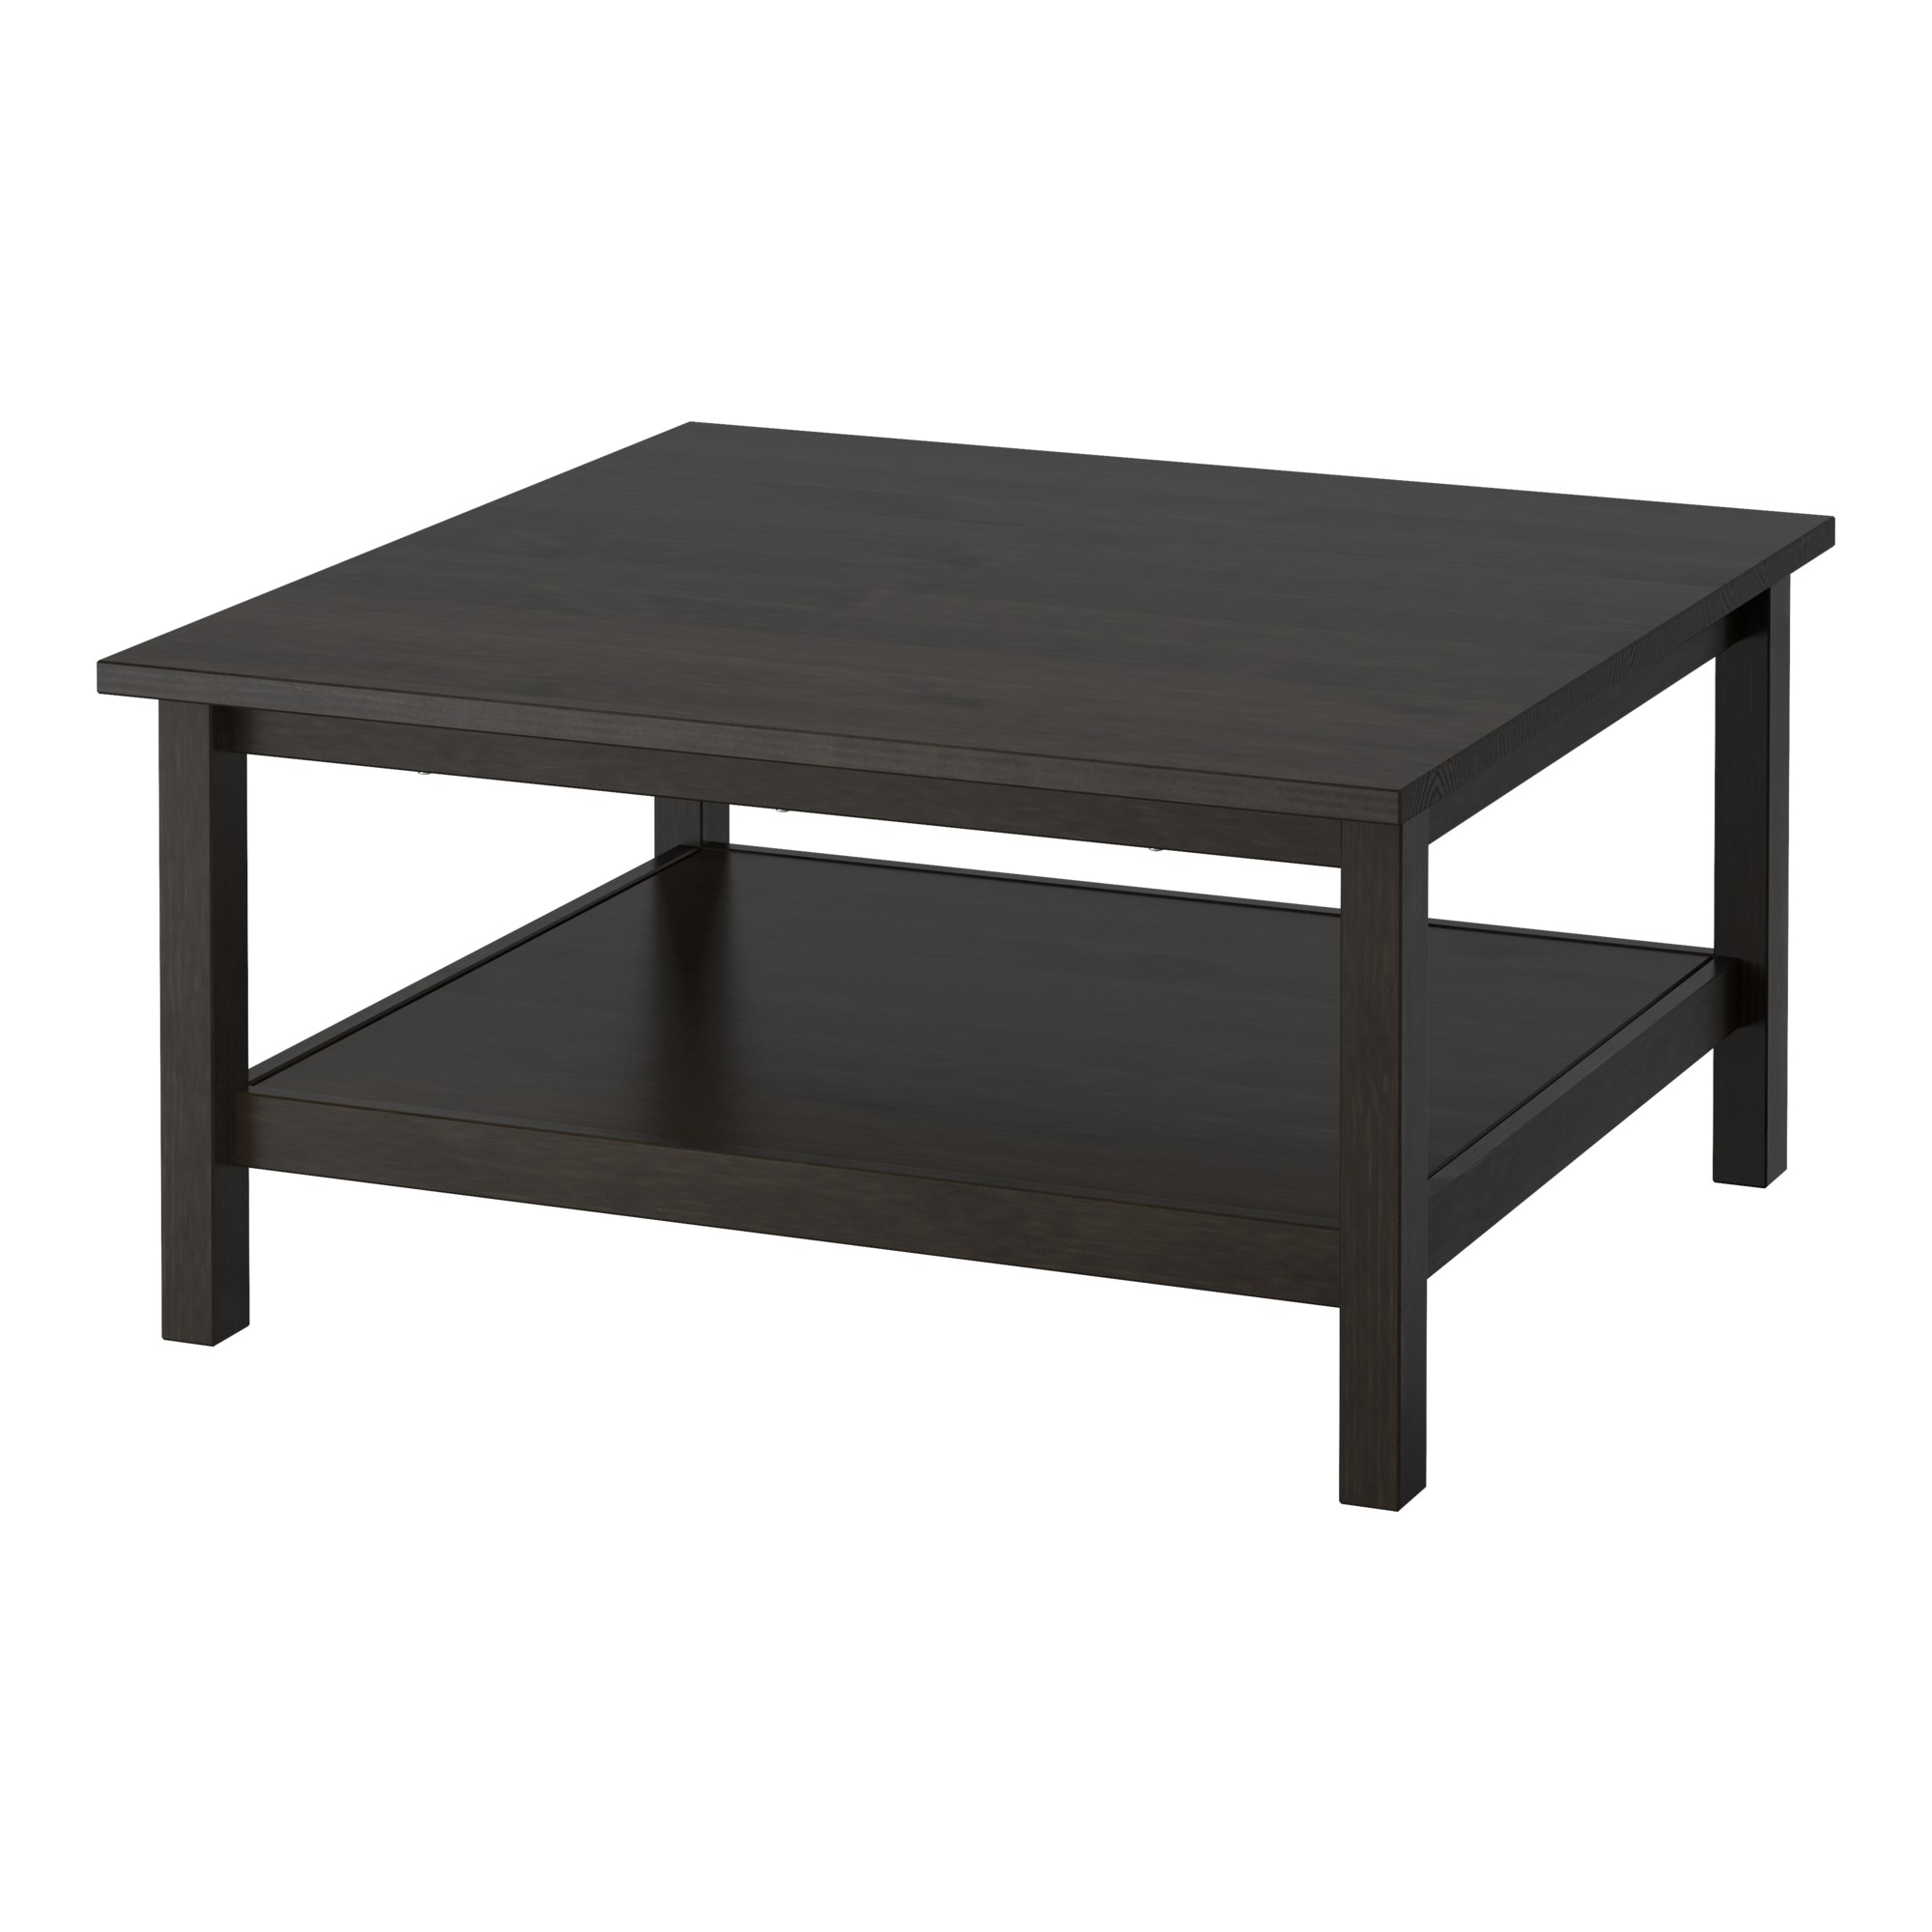 Coffee tables glass wooden coffee tables ikea hemnes coffee table black brown length 35 38 width geotapseo Gallery